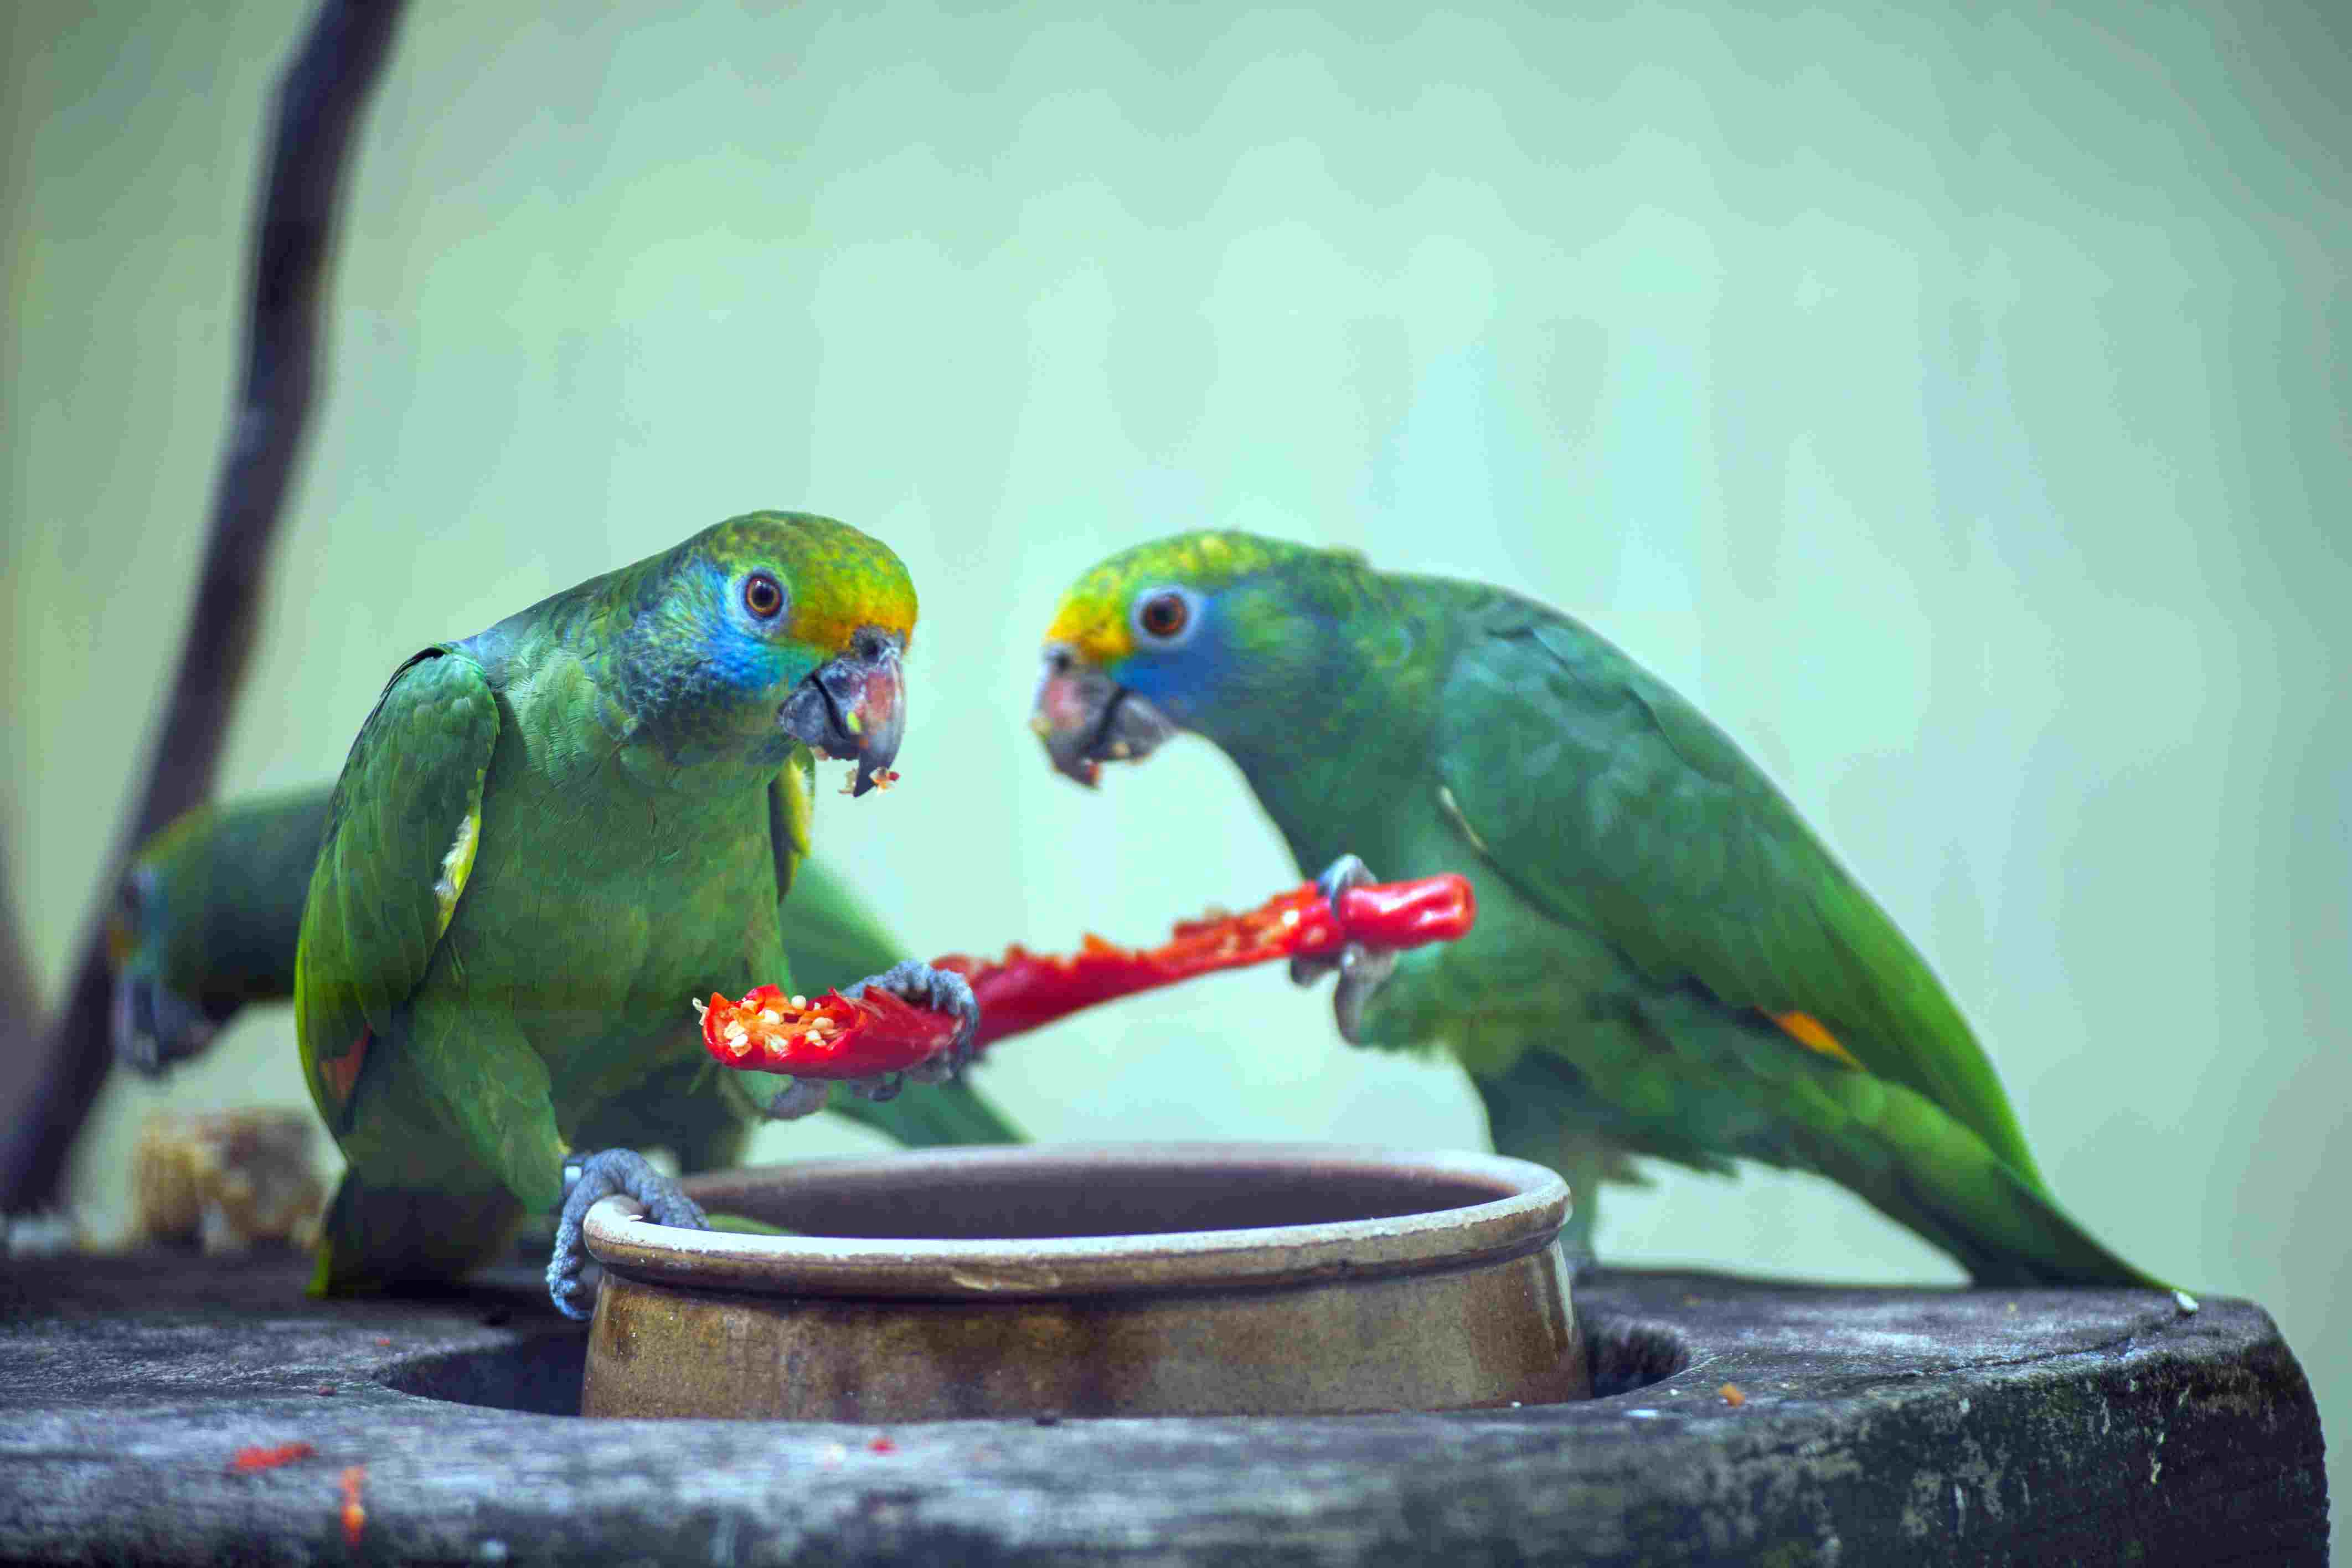 Parrots eating a chili pepper in cage